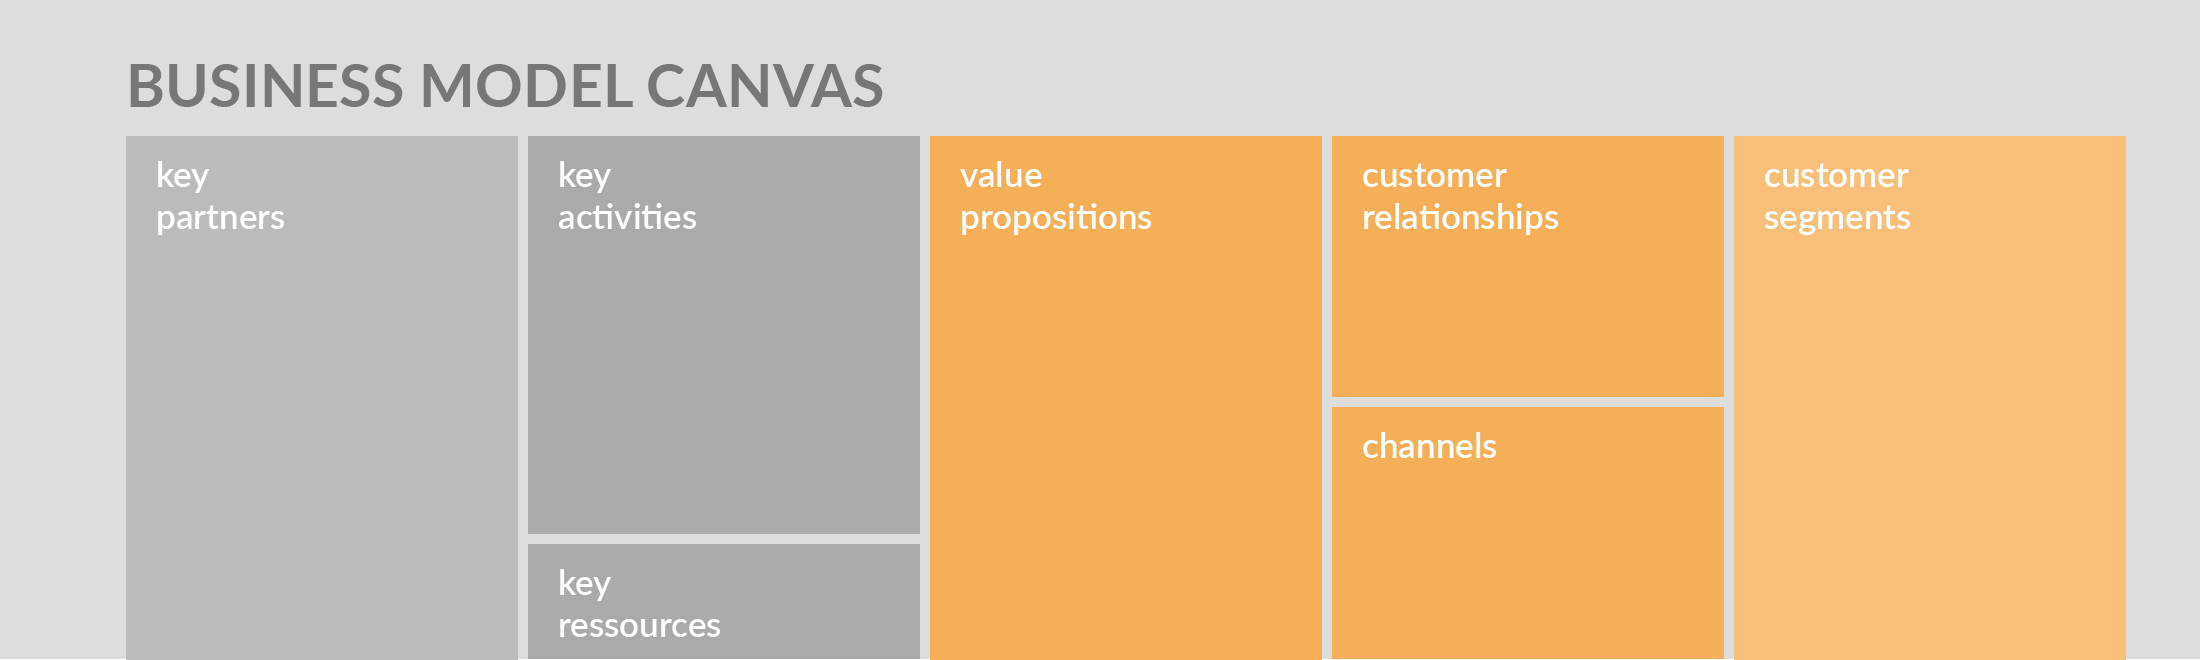 Using The Business Model Canvas Template In Draw Io Draw Io